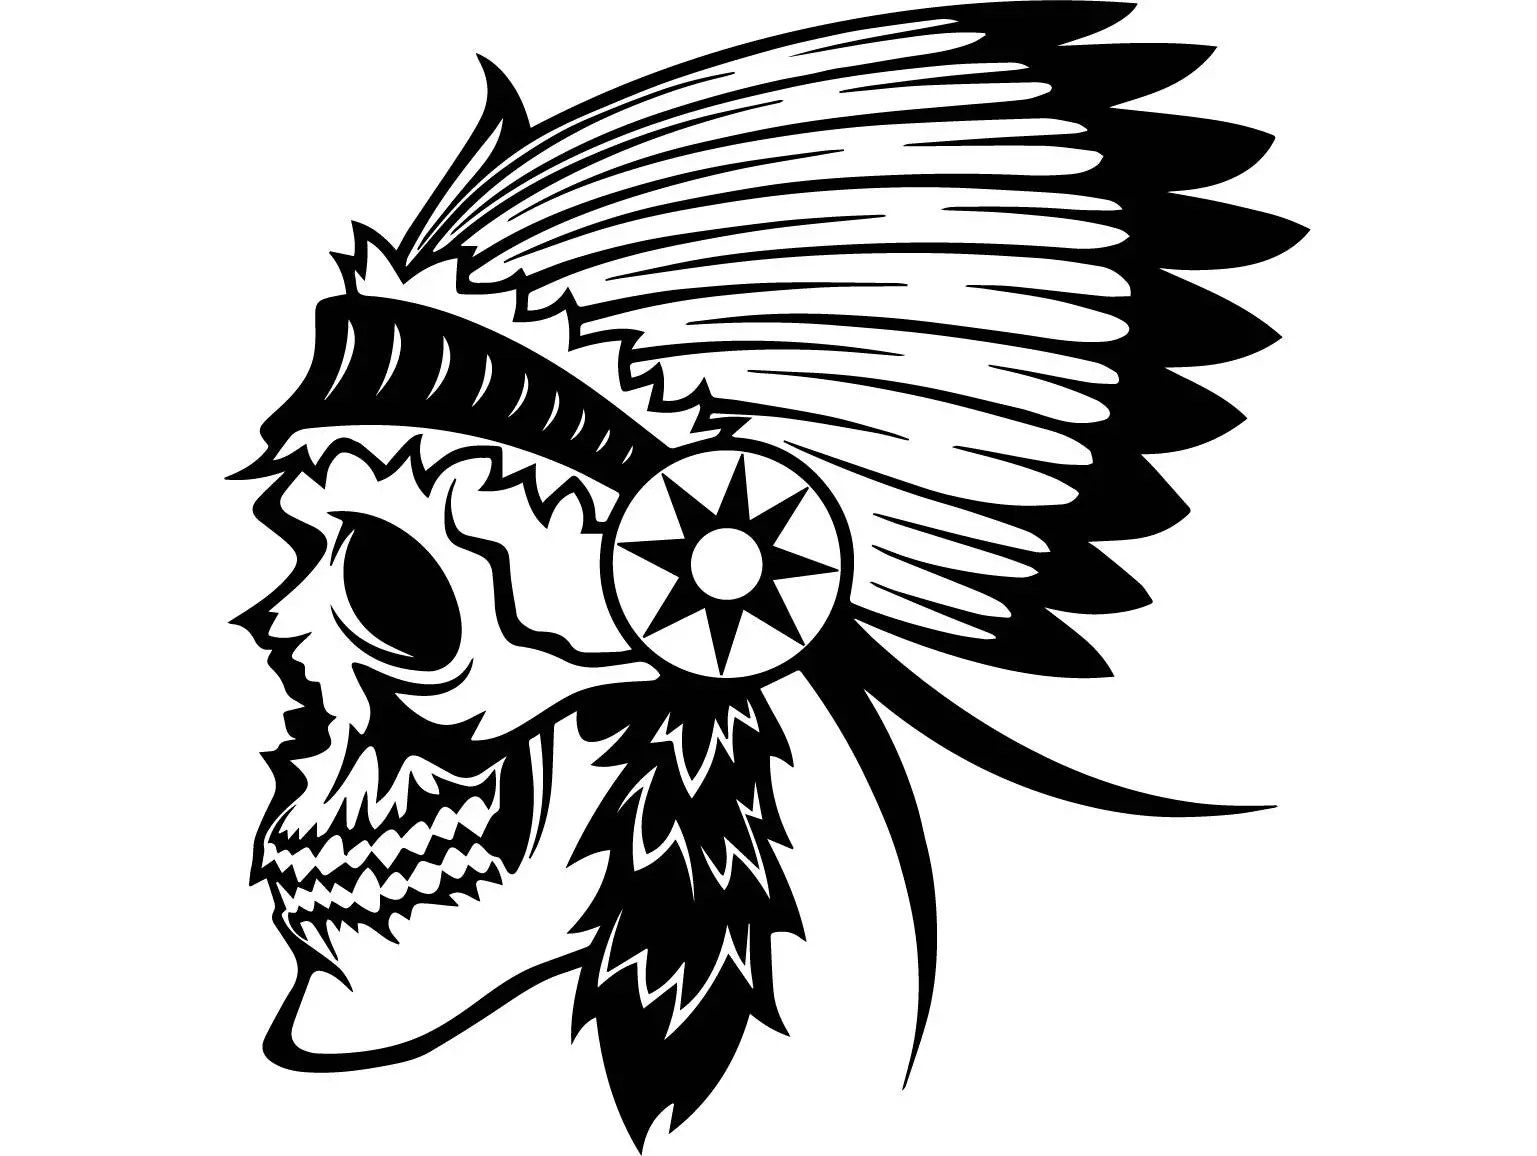 Indian Skull #2 Native American Warrior Headdress Feather